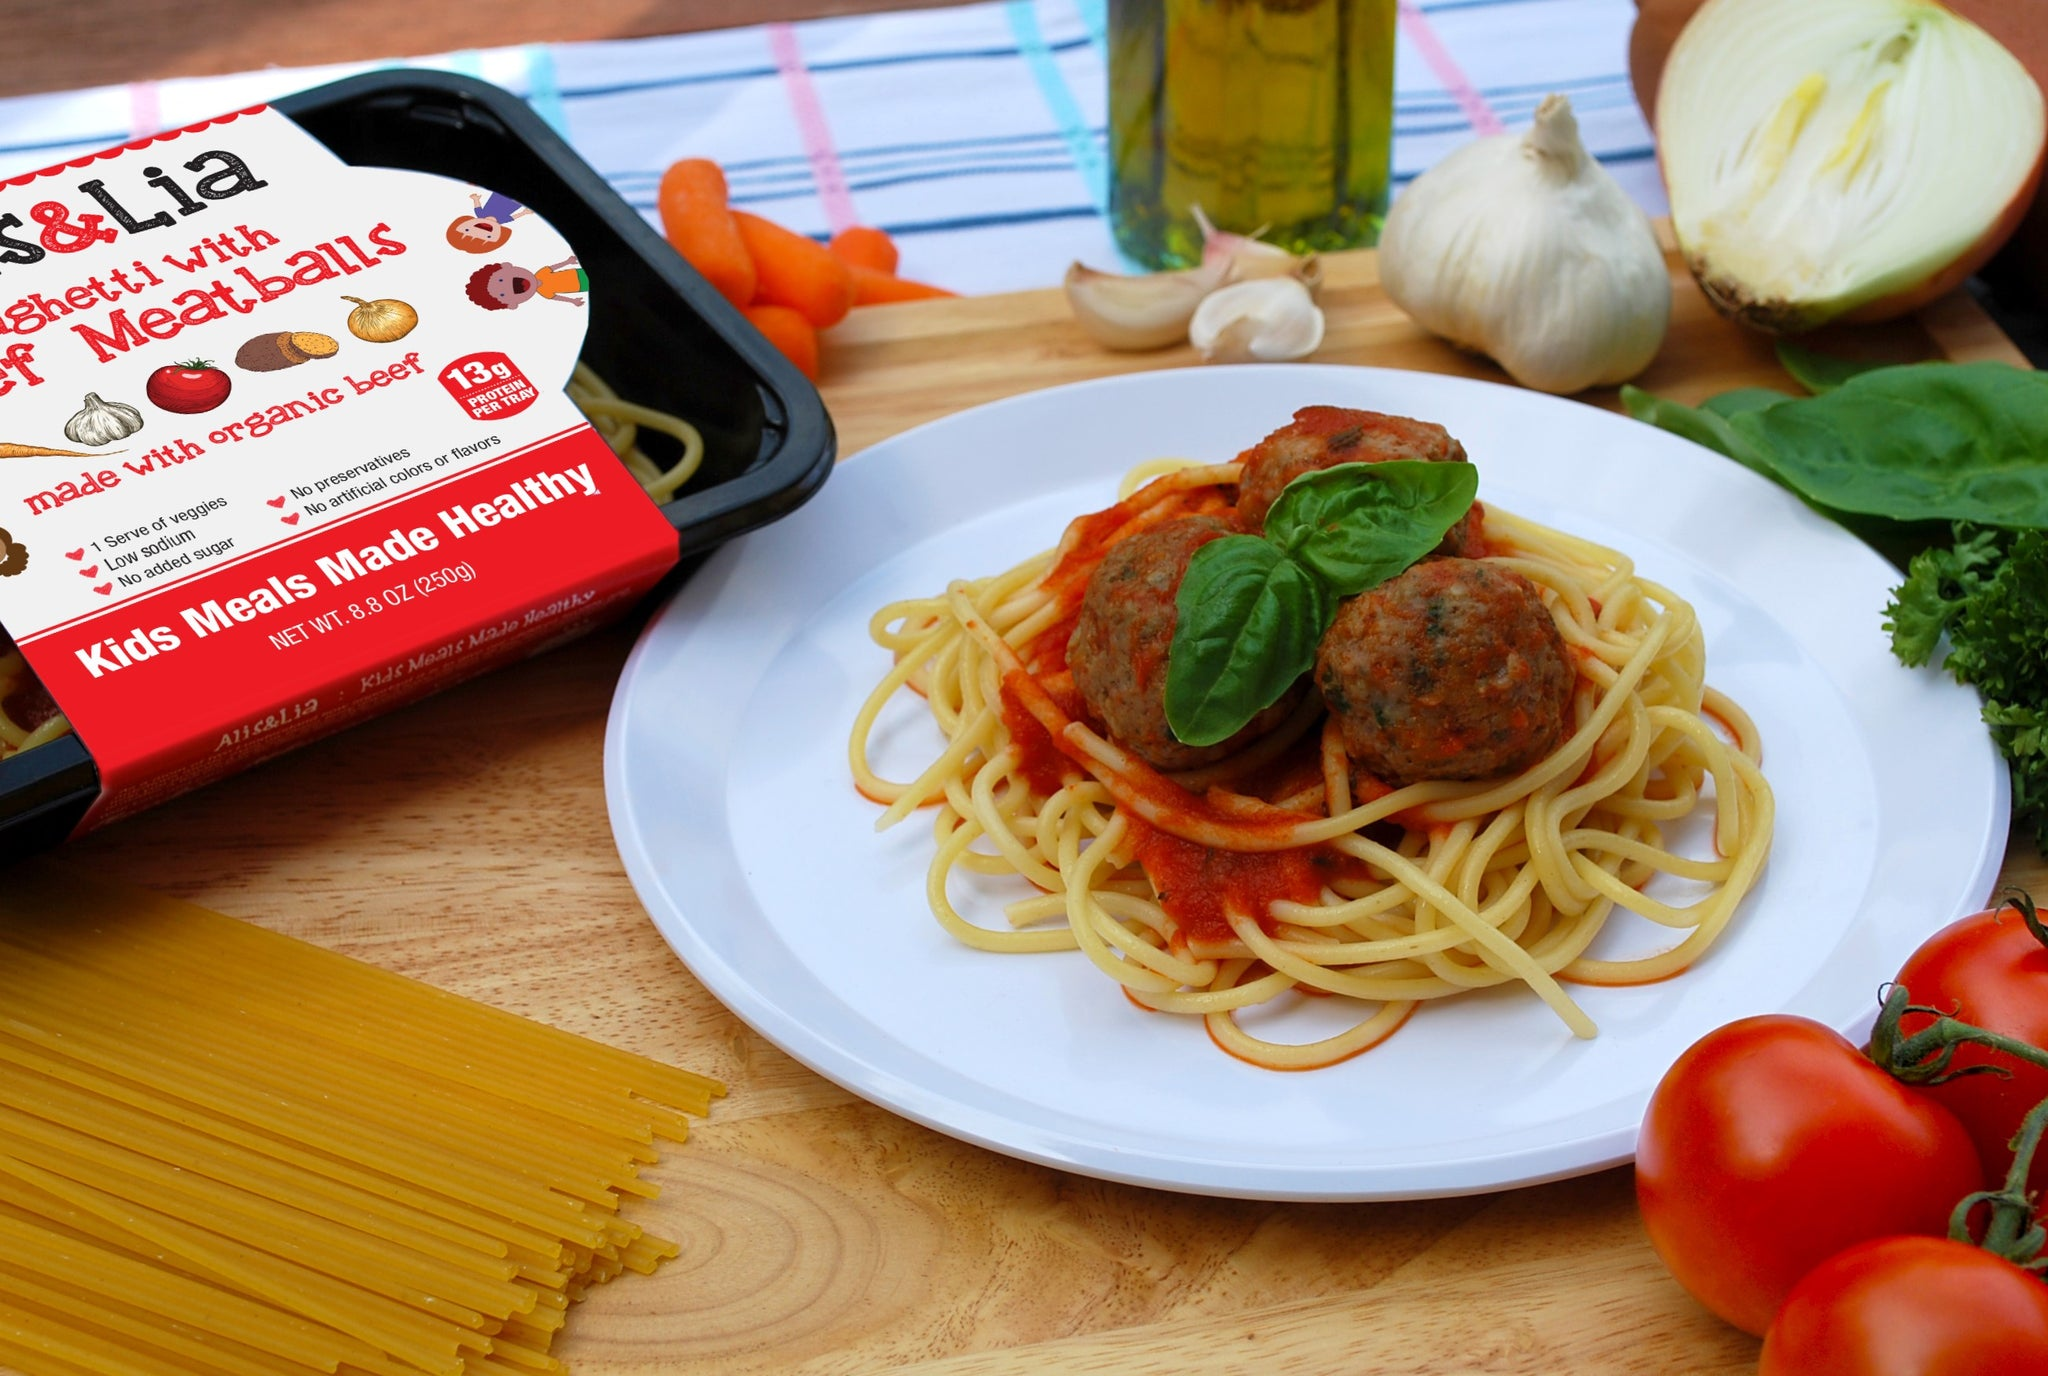 kids meals beef meatballs and spaghetti fresh vegetables